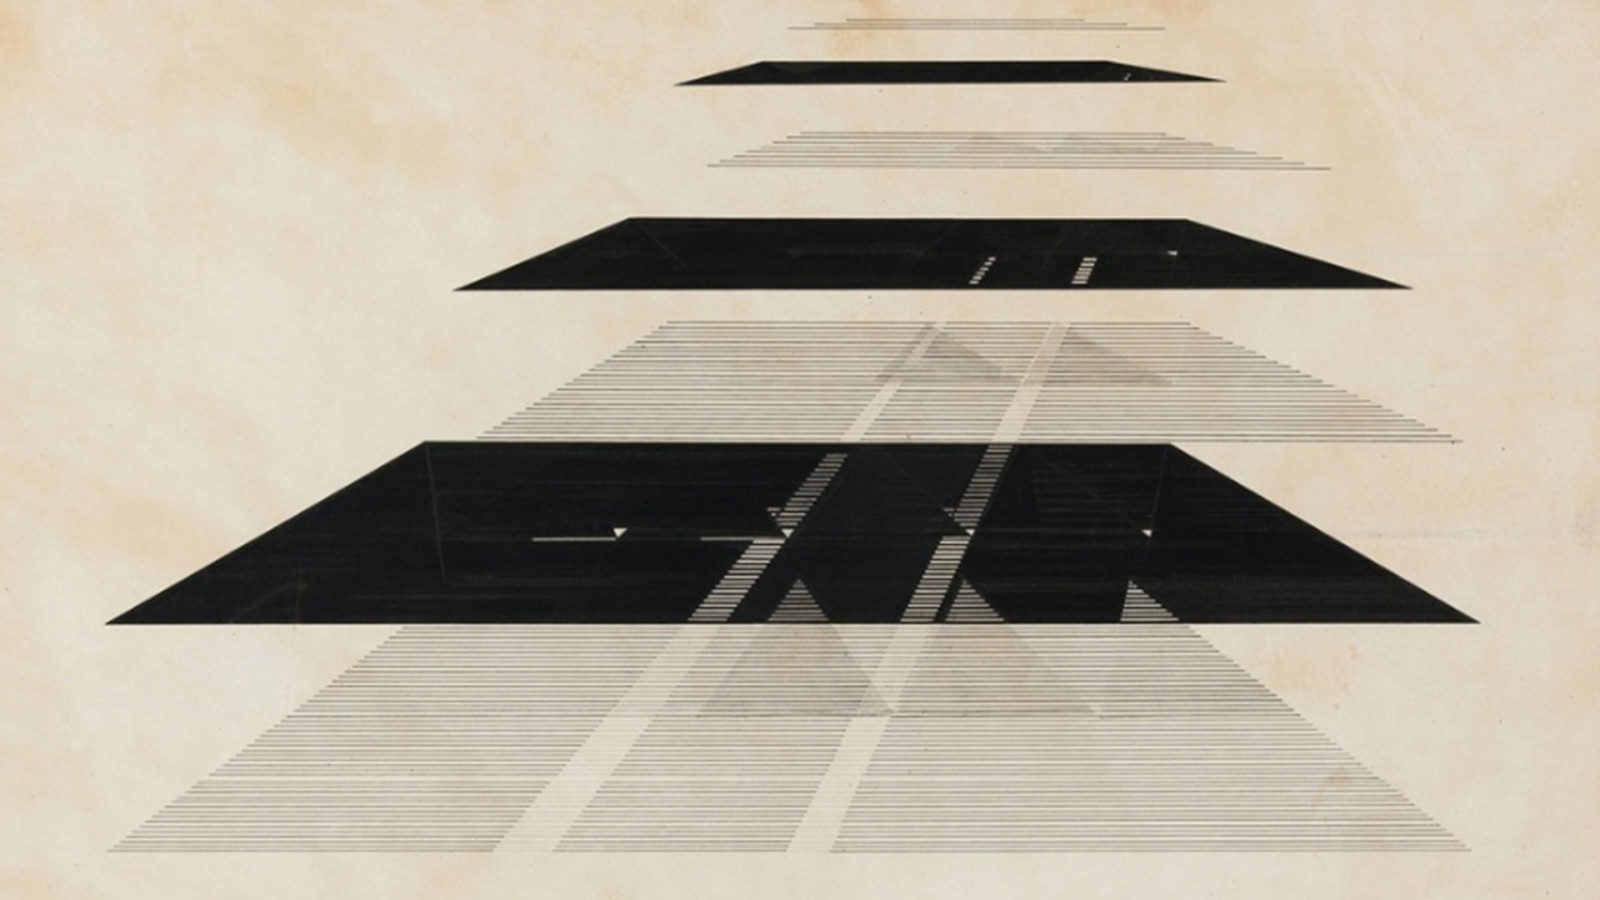 Nasreen Mohamedi. Untitled. Courtsey of Tate Liverpool